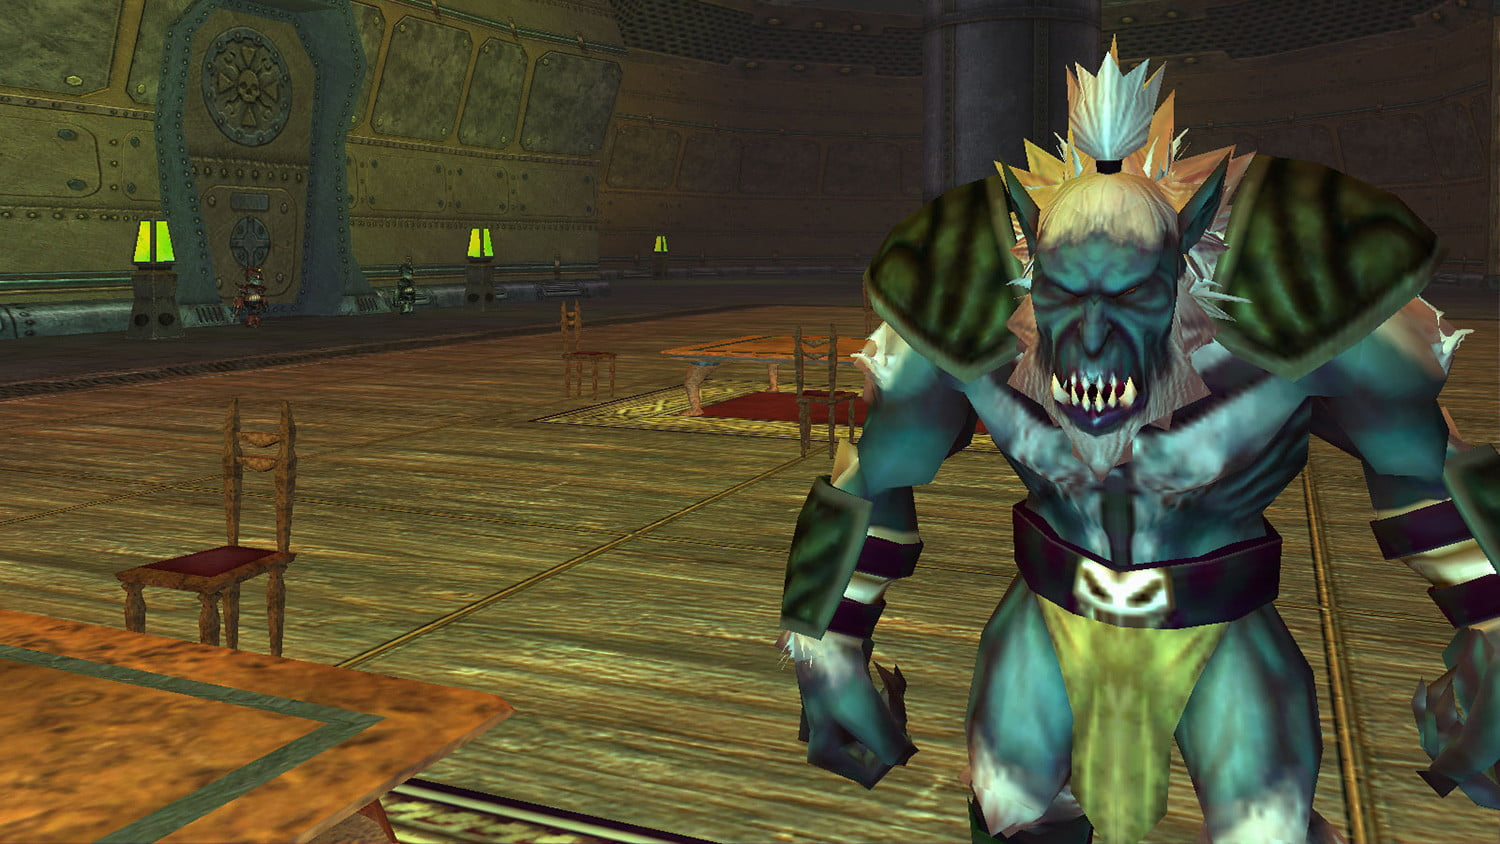 life lessons my dad taught me through everquest screenshots 04